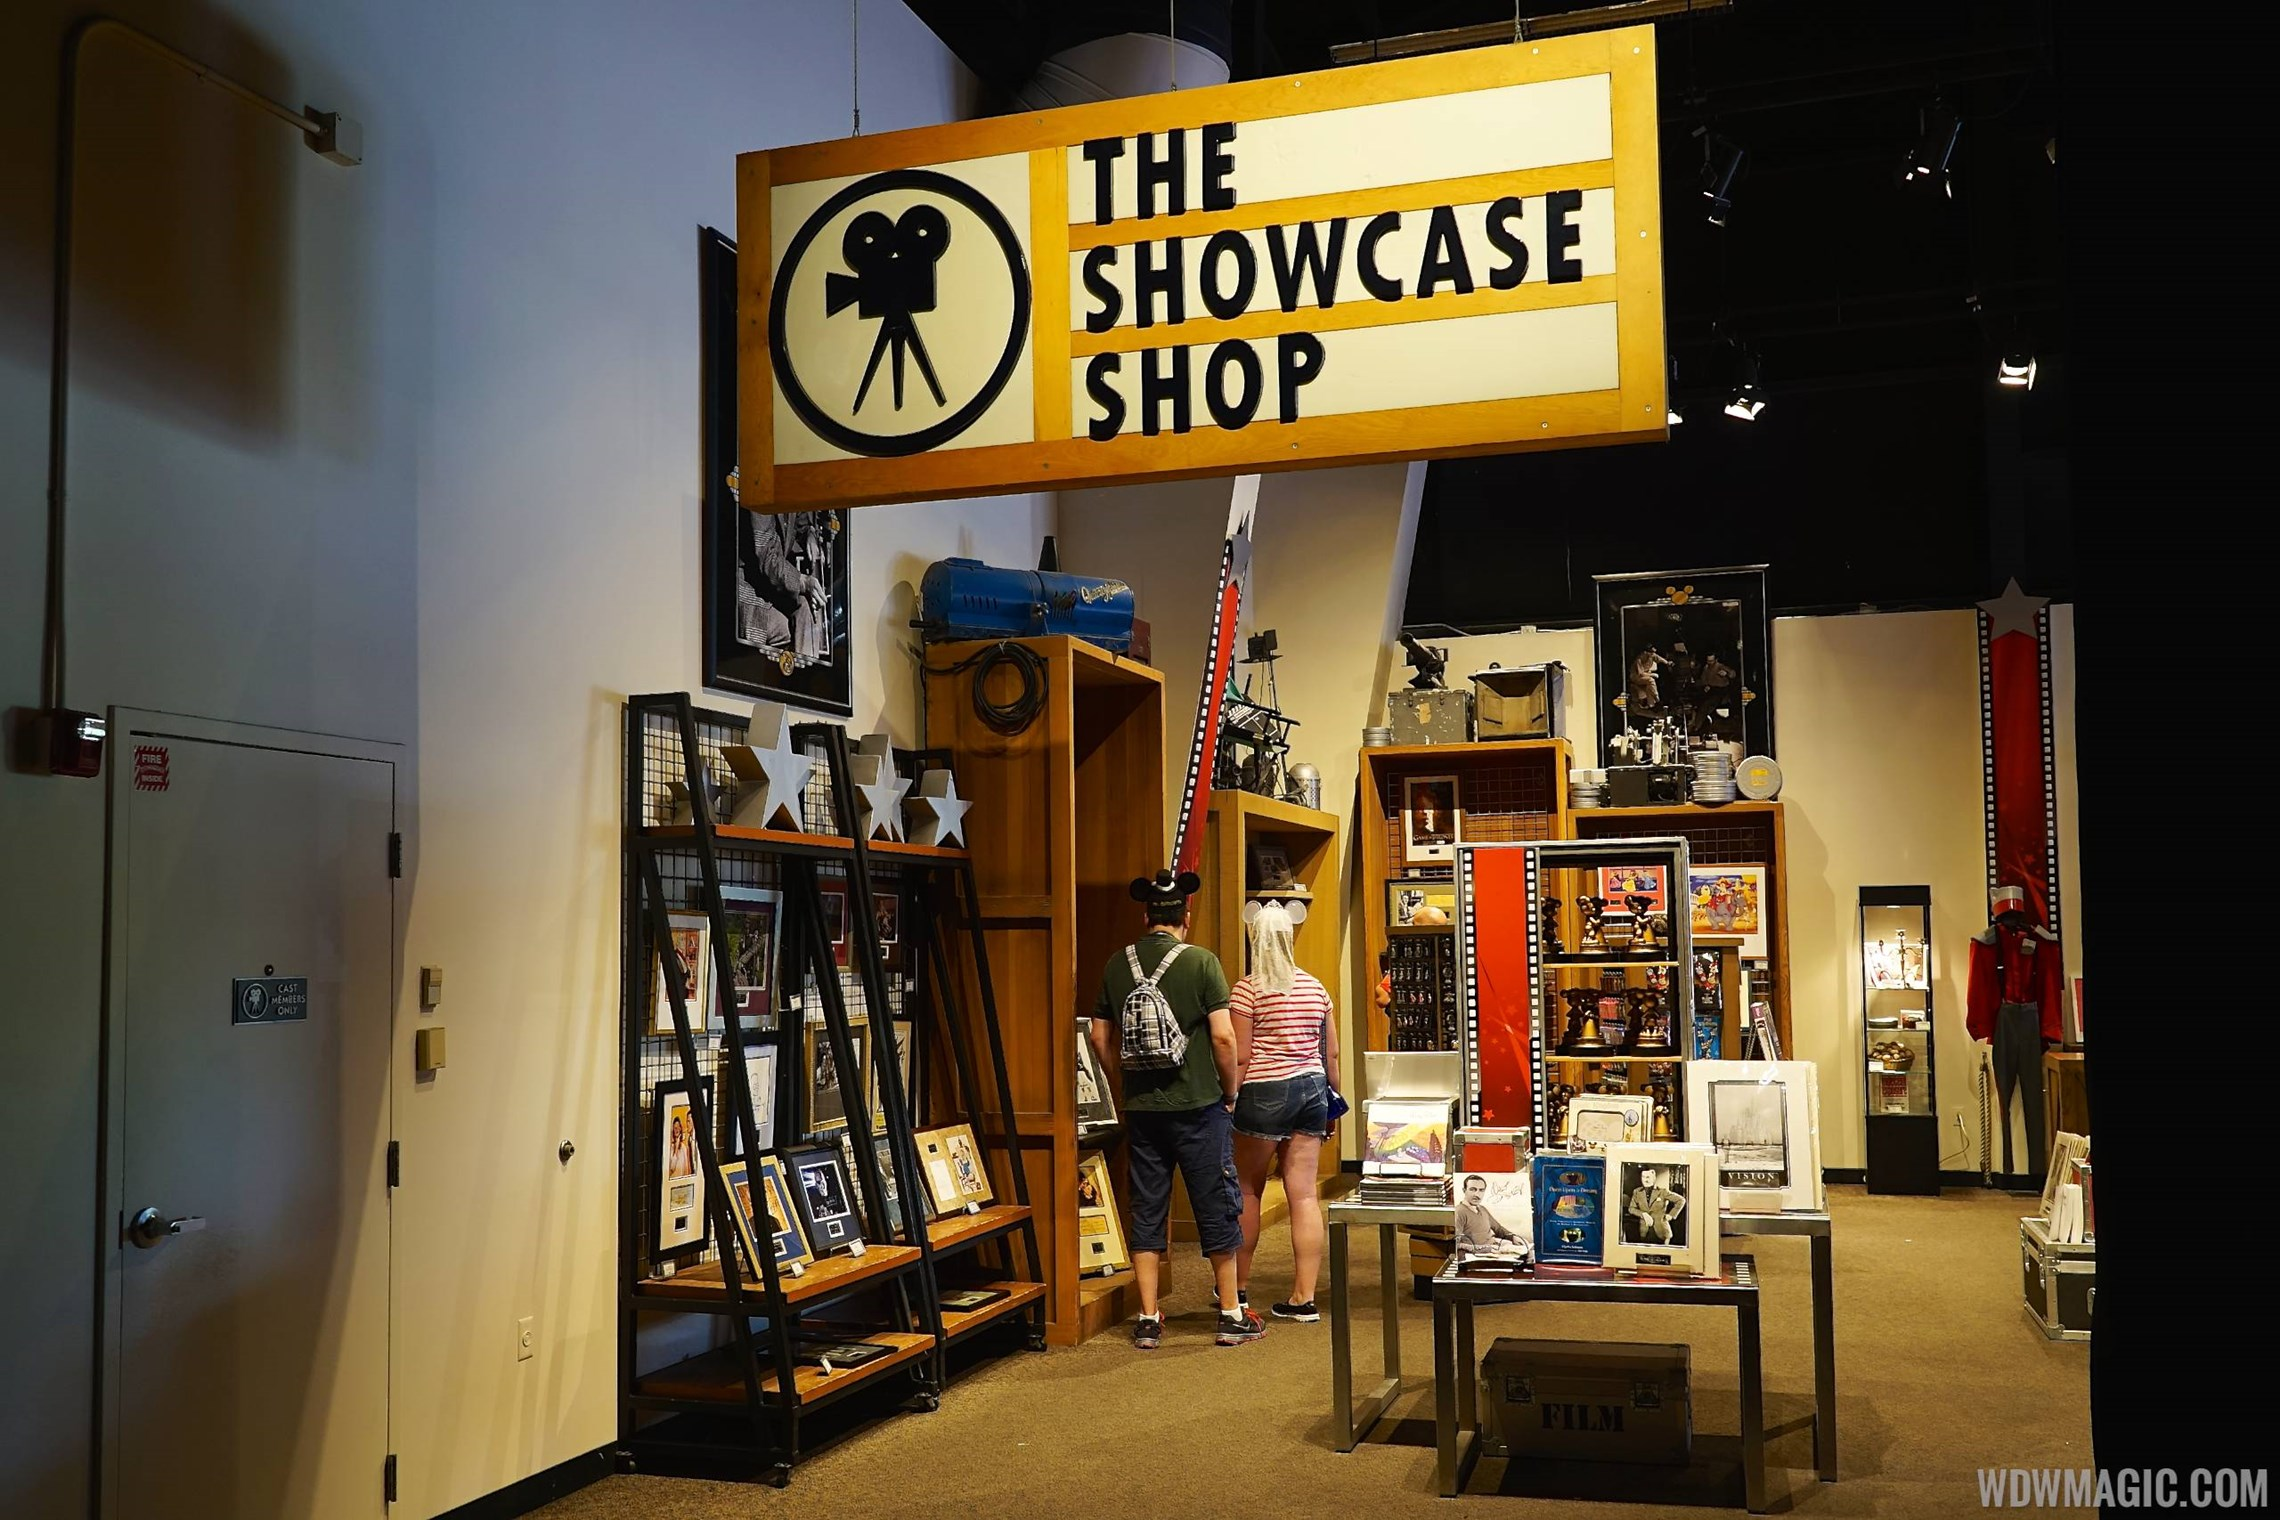 American Film Institute exhibit